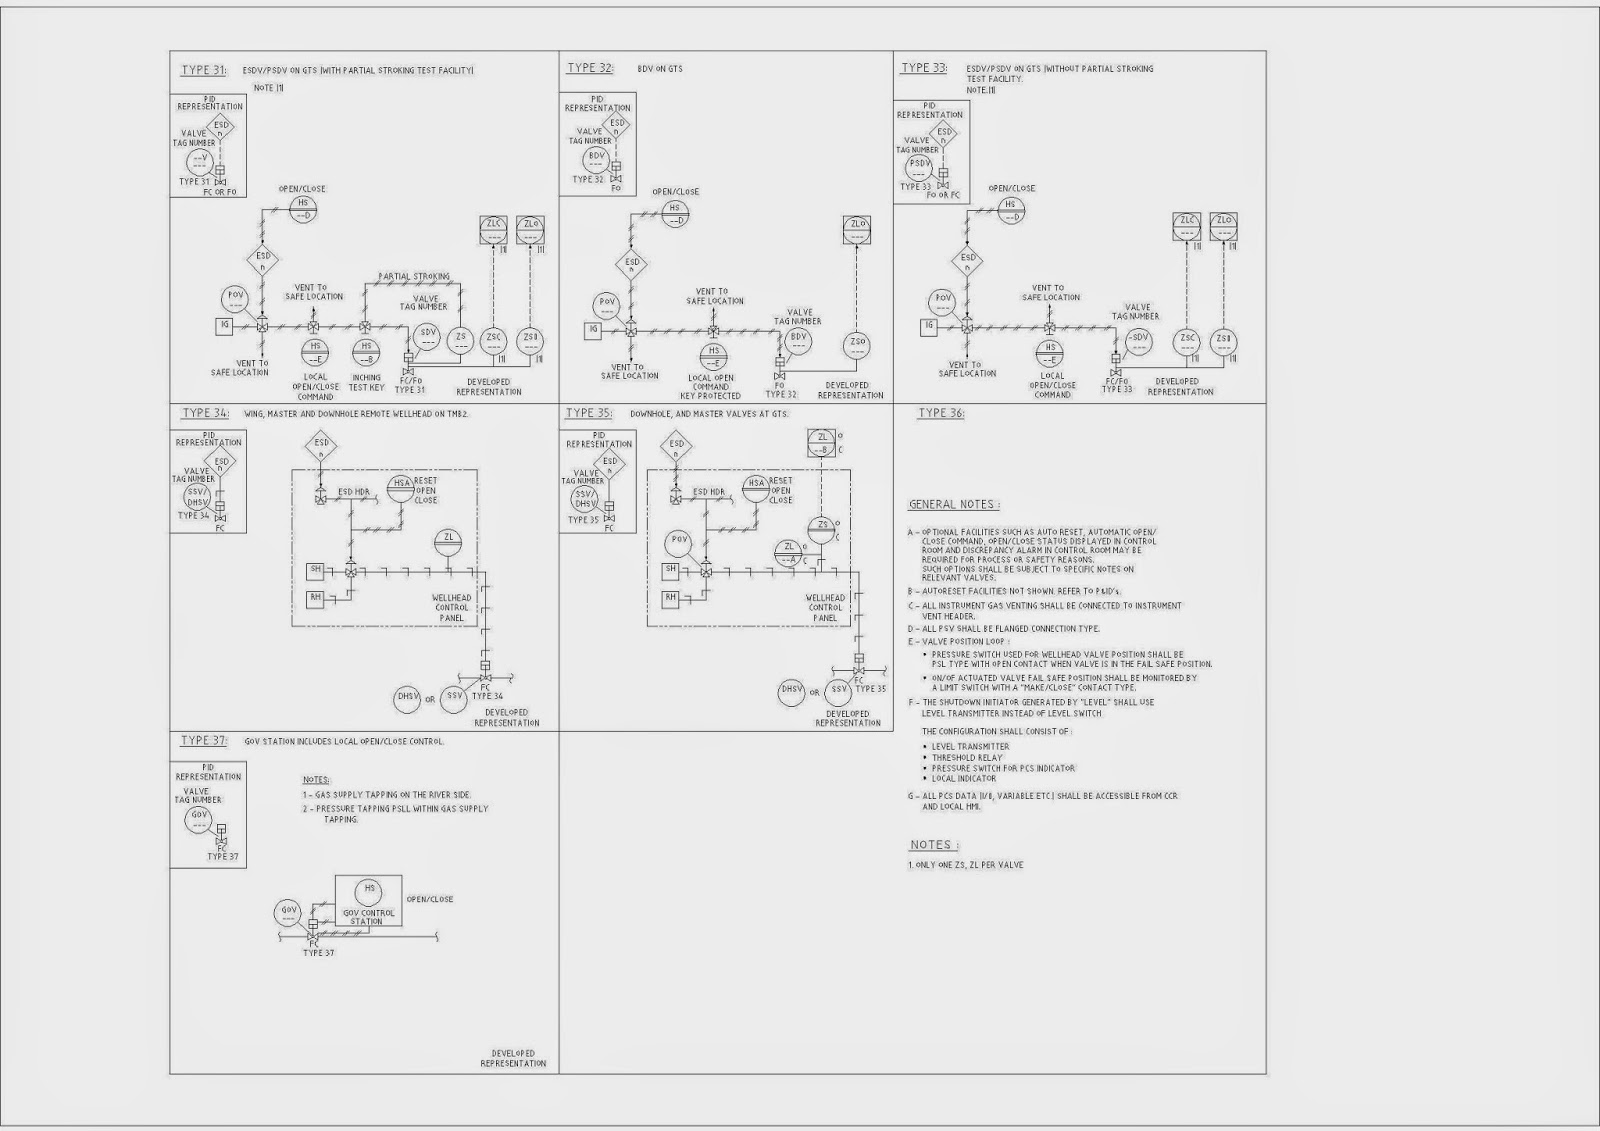 R.Land Baidin Egwar, ST: PIPING & INSTRUMENTATION DIAGRAM